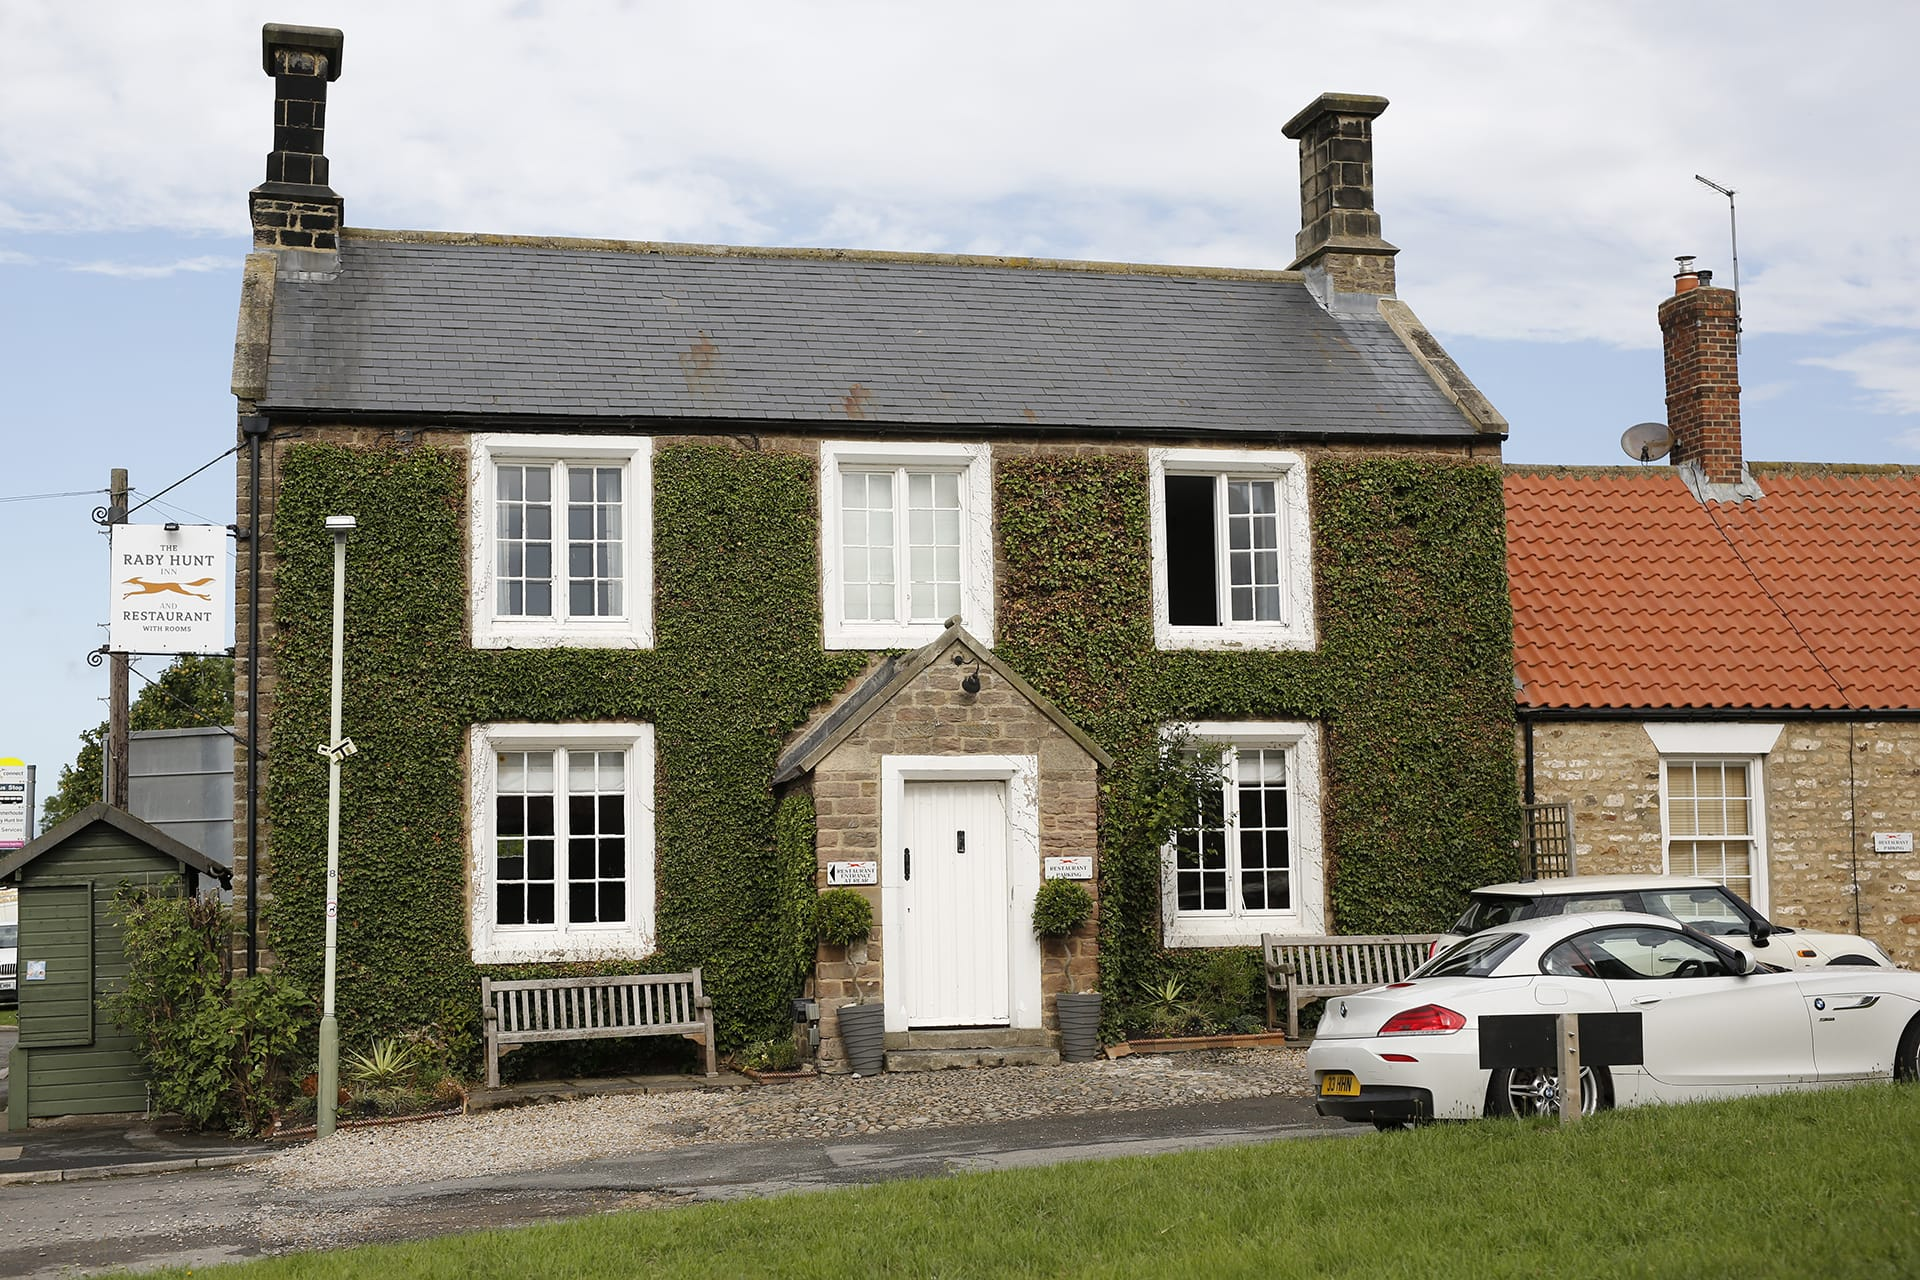 The Raby Hunt in Darlington, England, has two stars in Guide Michelin.